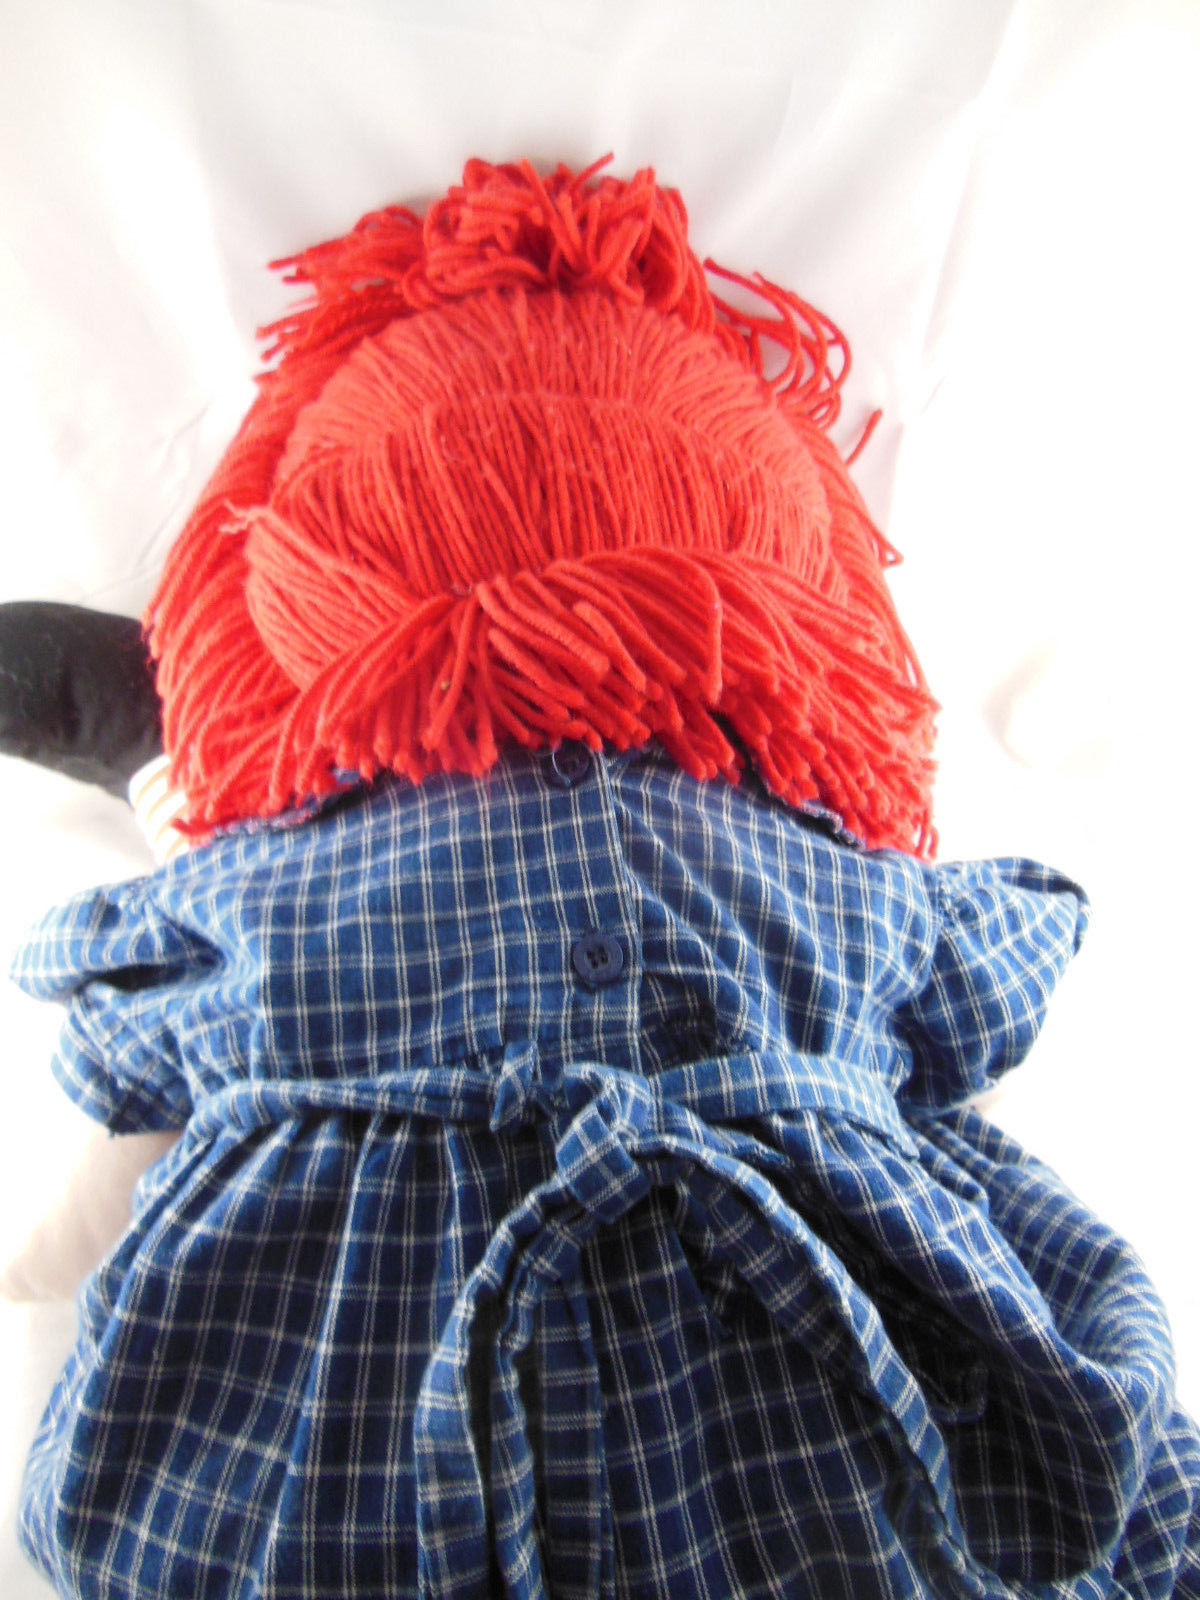 "RAGGEDY ANN RAG DOLL 35"" by Applause 2004 Hasbro Button Eyes Embroidered details"